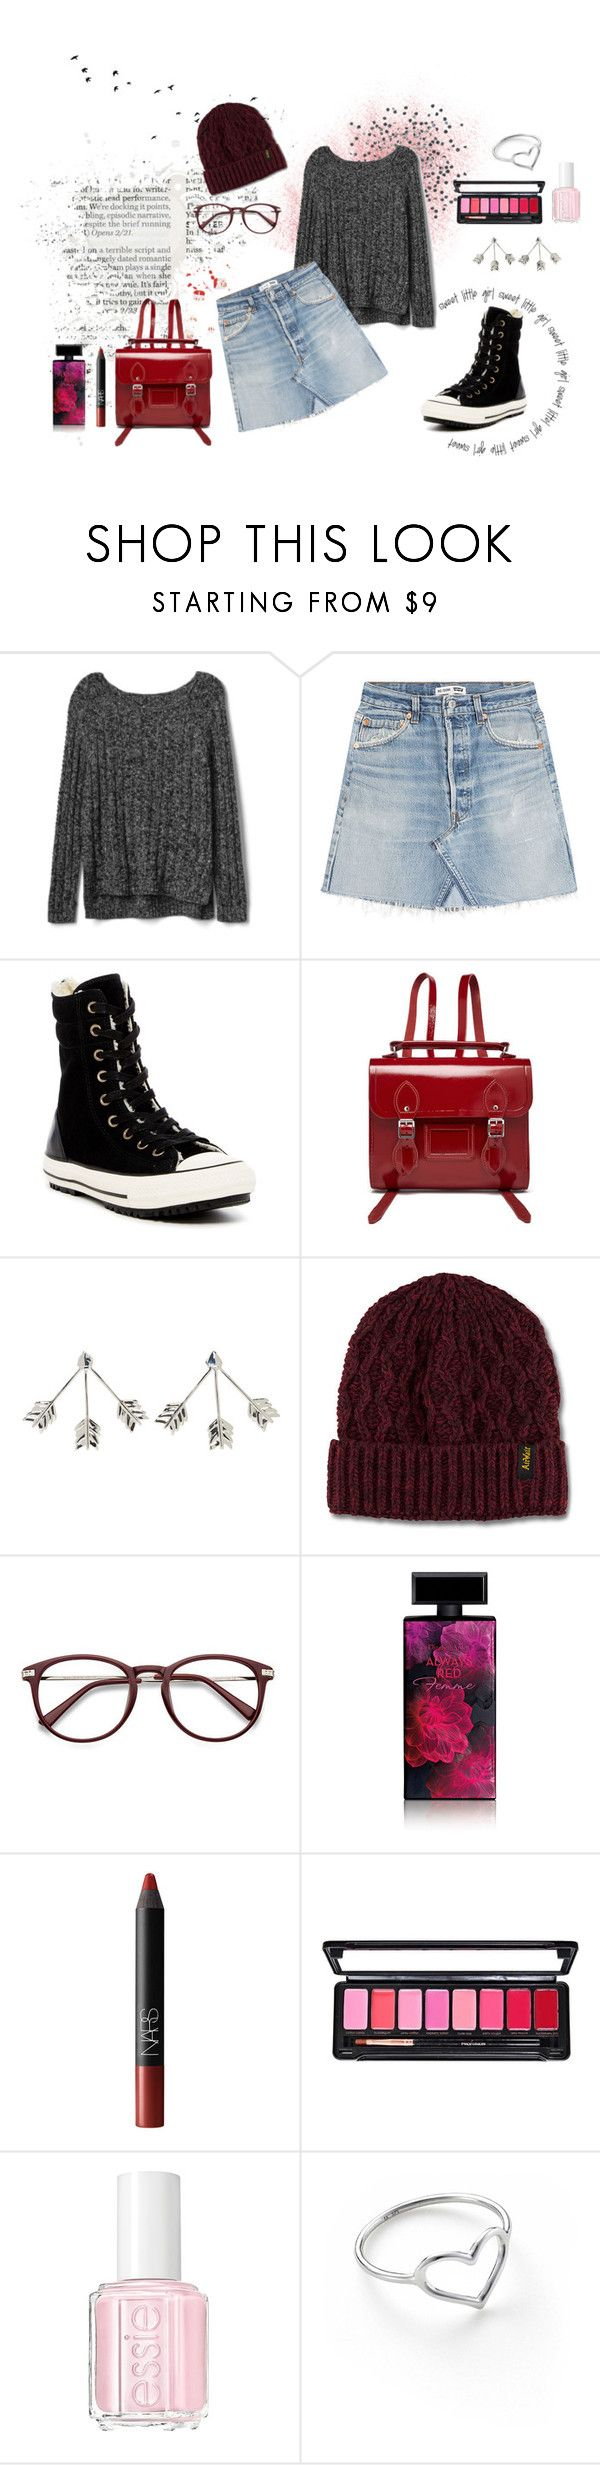 """""""Look of the day (25/01/17)"""" by marock ❤ liked on Polyvore featuring Gap, RE/DONE, Converse, The Cambridge Satchel Company, Pamela Love, Dr. Martens, Elizabeth Arden, NARS Cosmetics, Essie and Jordan Askill"""